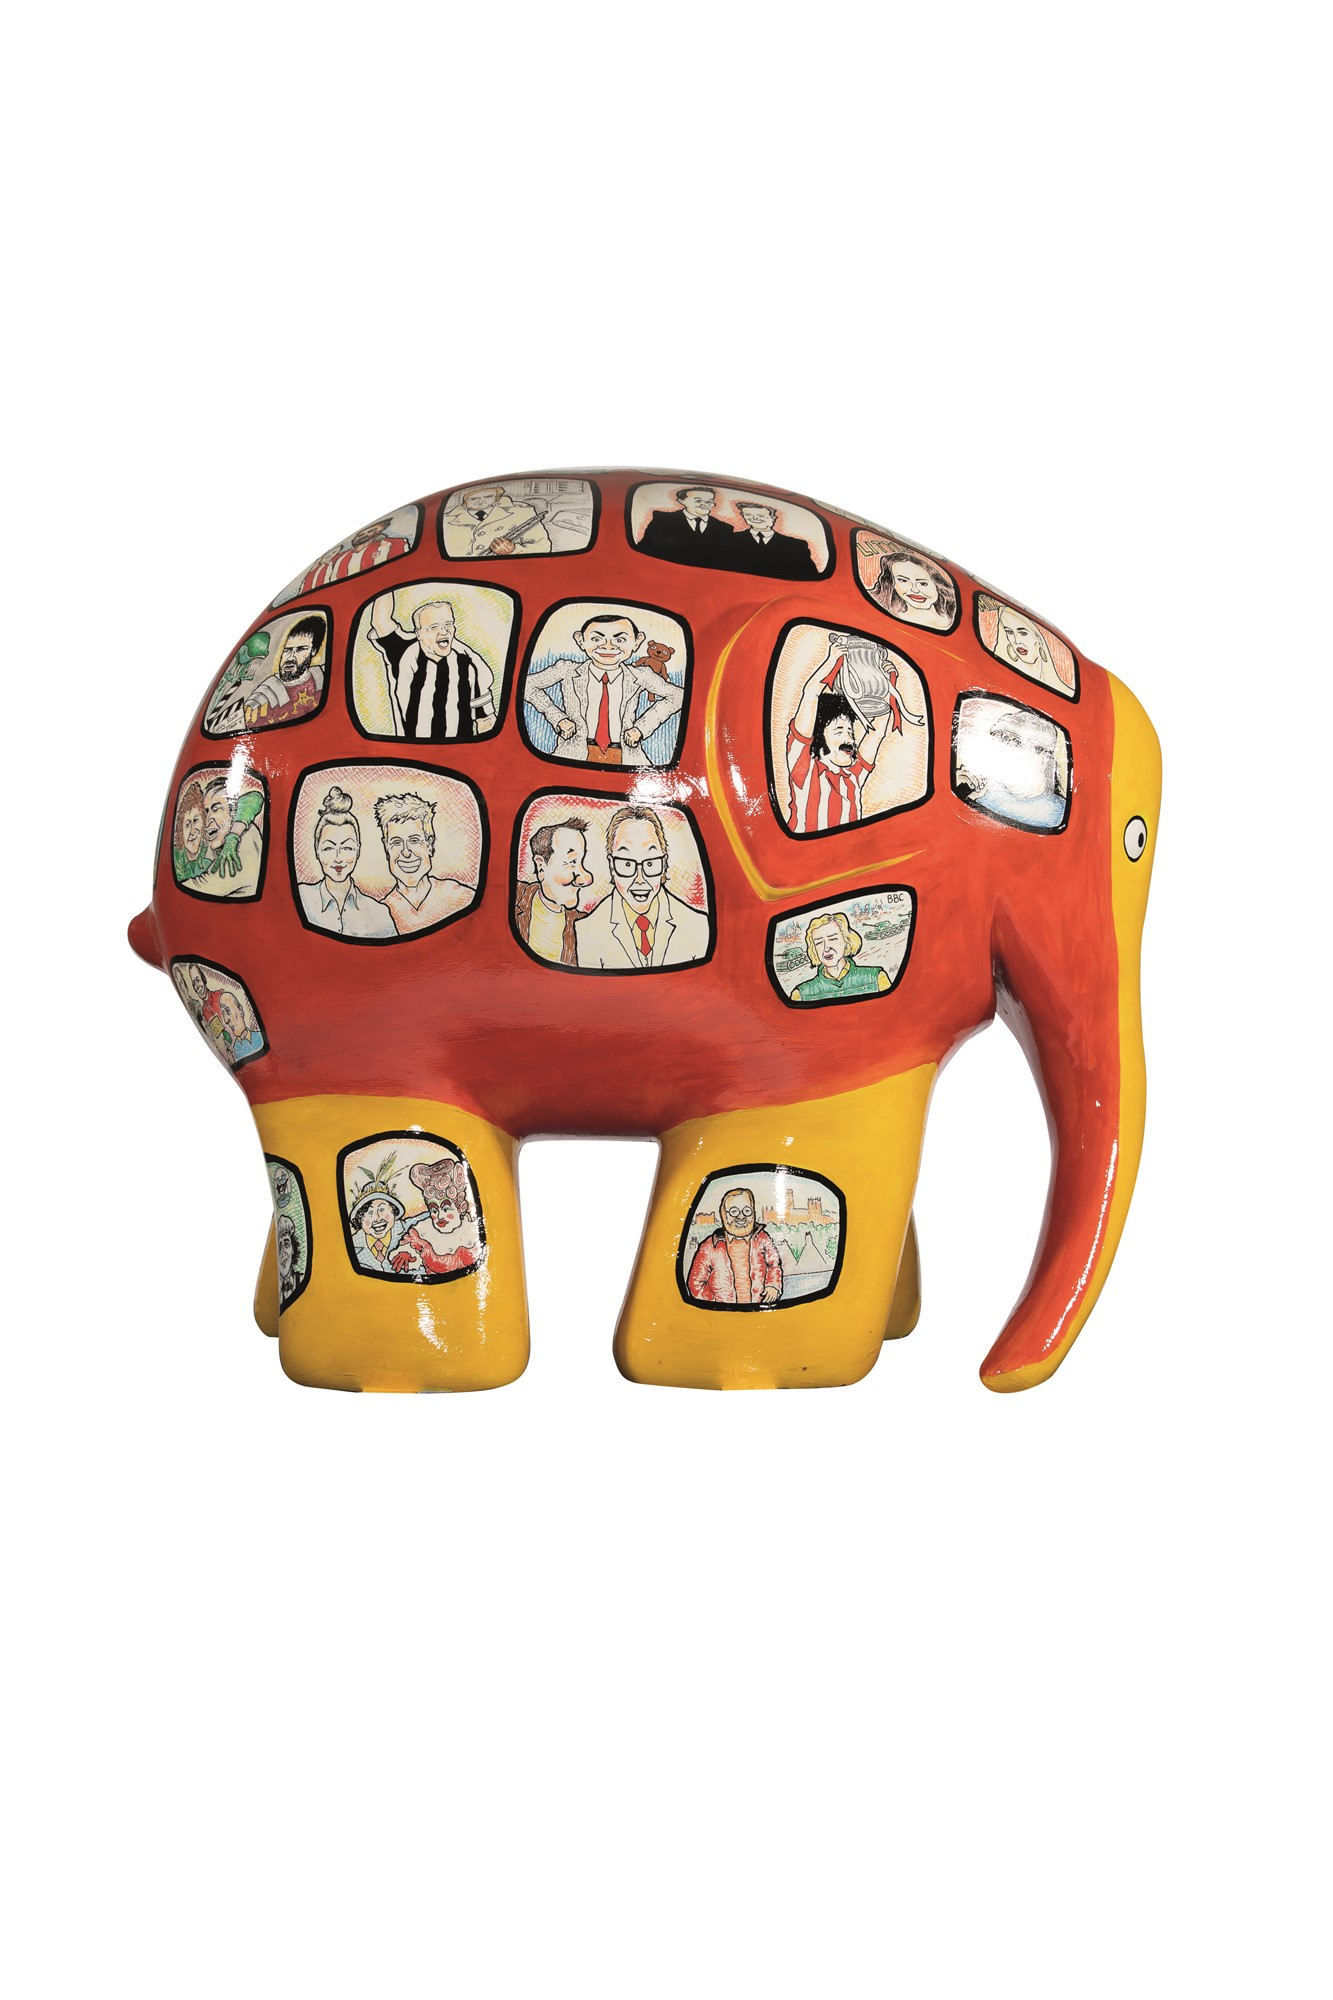 Lot 20 - Telly the Elephant